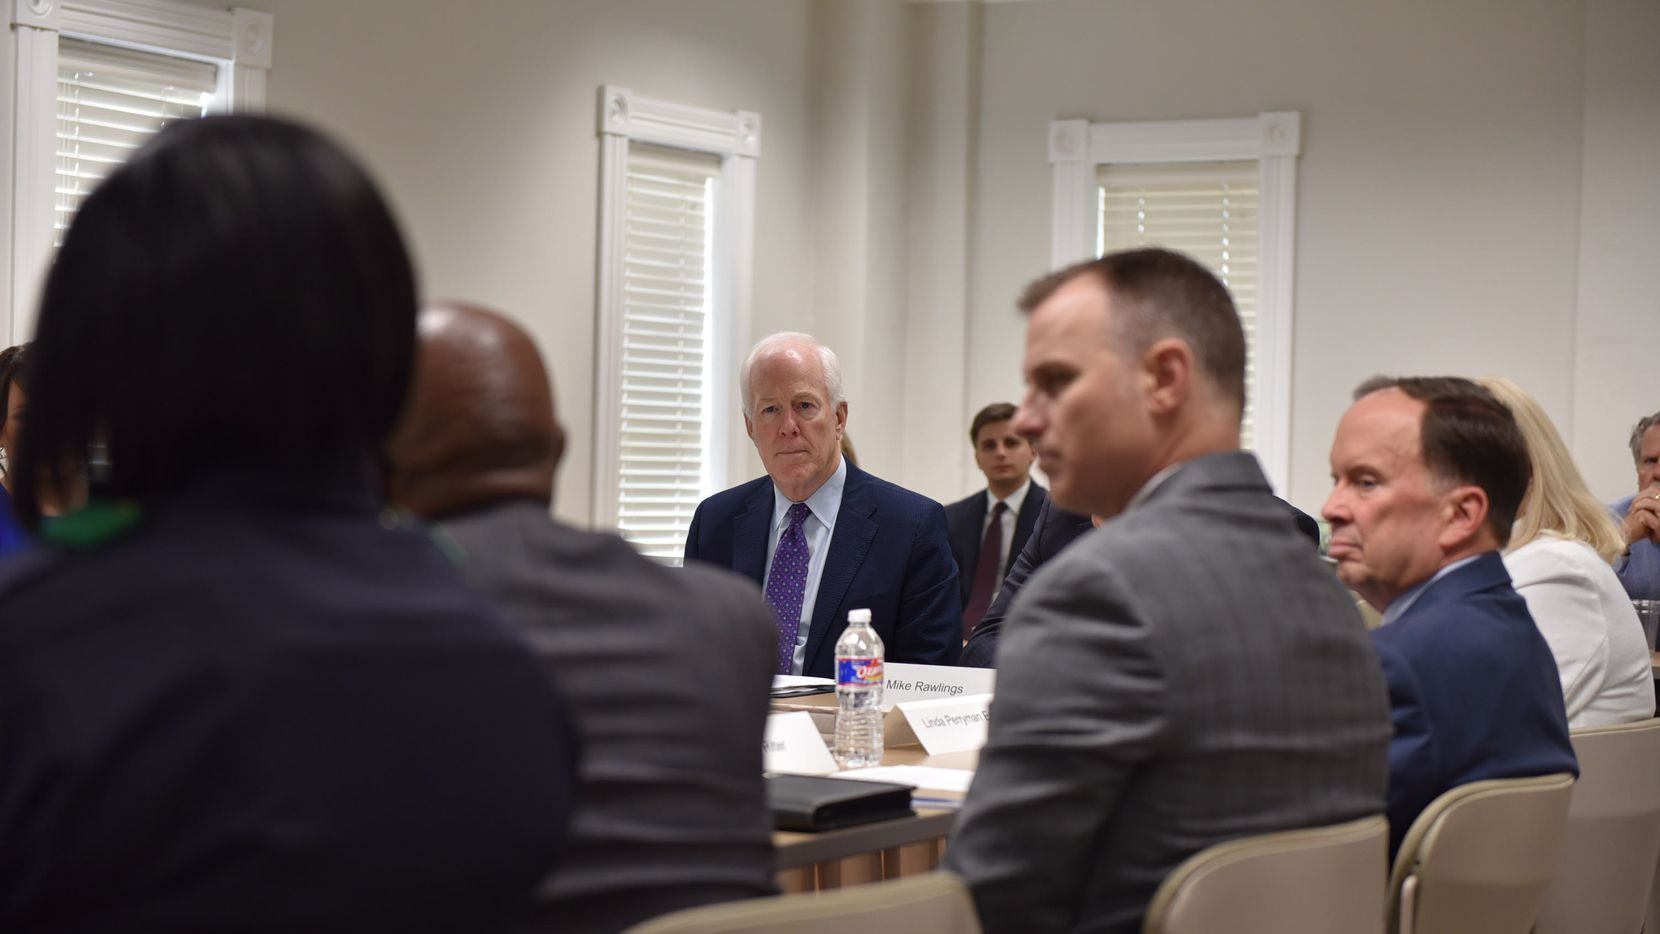 Sen. John Cornyn, R-Texas, takes a special interest in mental health. He was briefed Friday on the RIGHT (Rapid Integrated Group Healthcare Team) pilot program, which pairs counselors with cops to better respond to mental health calls in Southern Dallas.